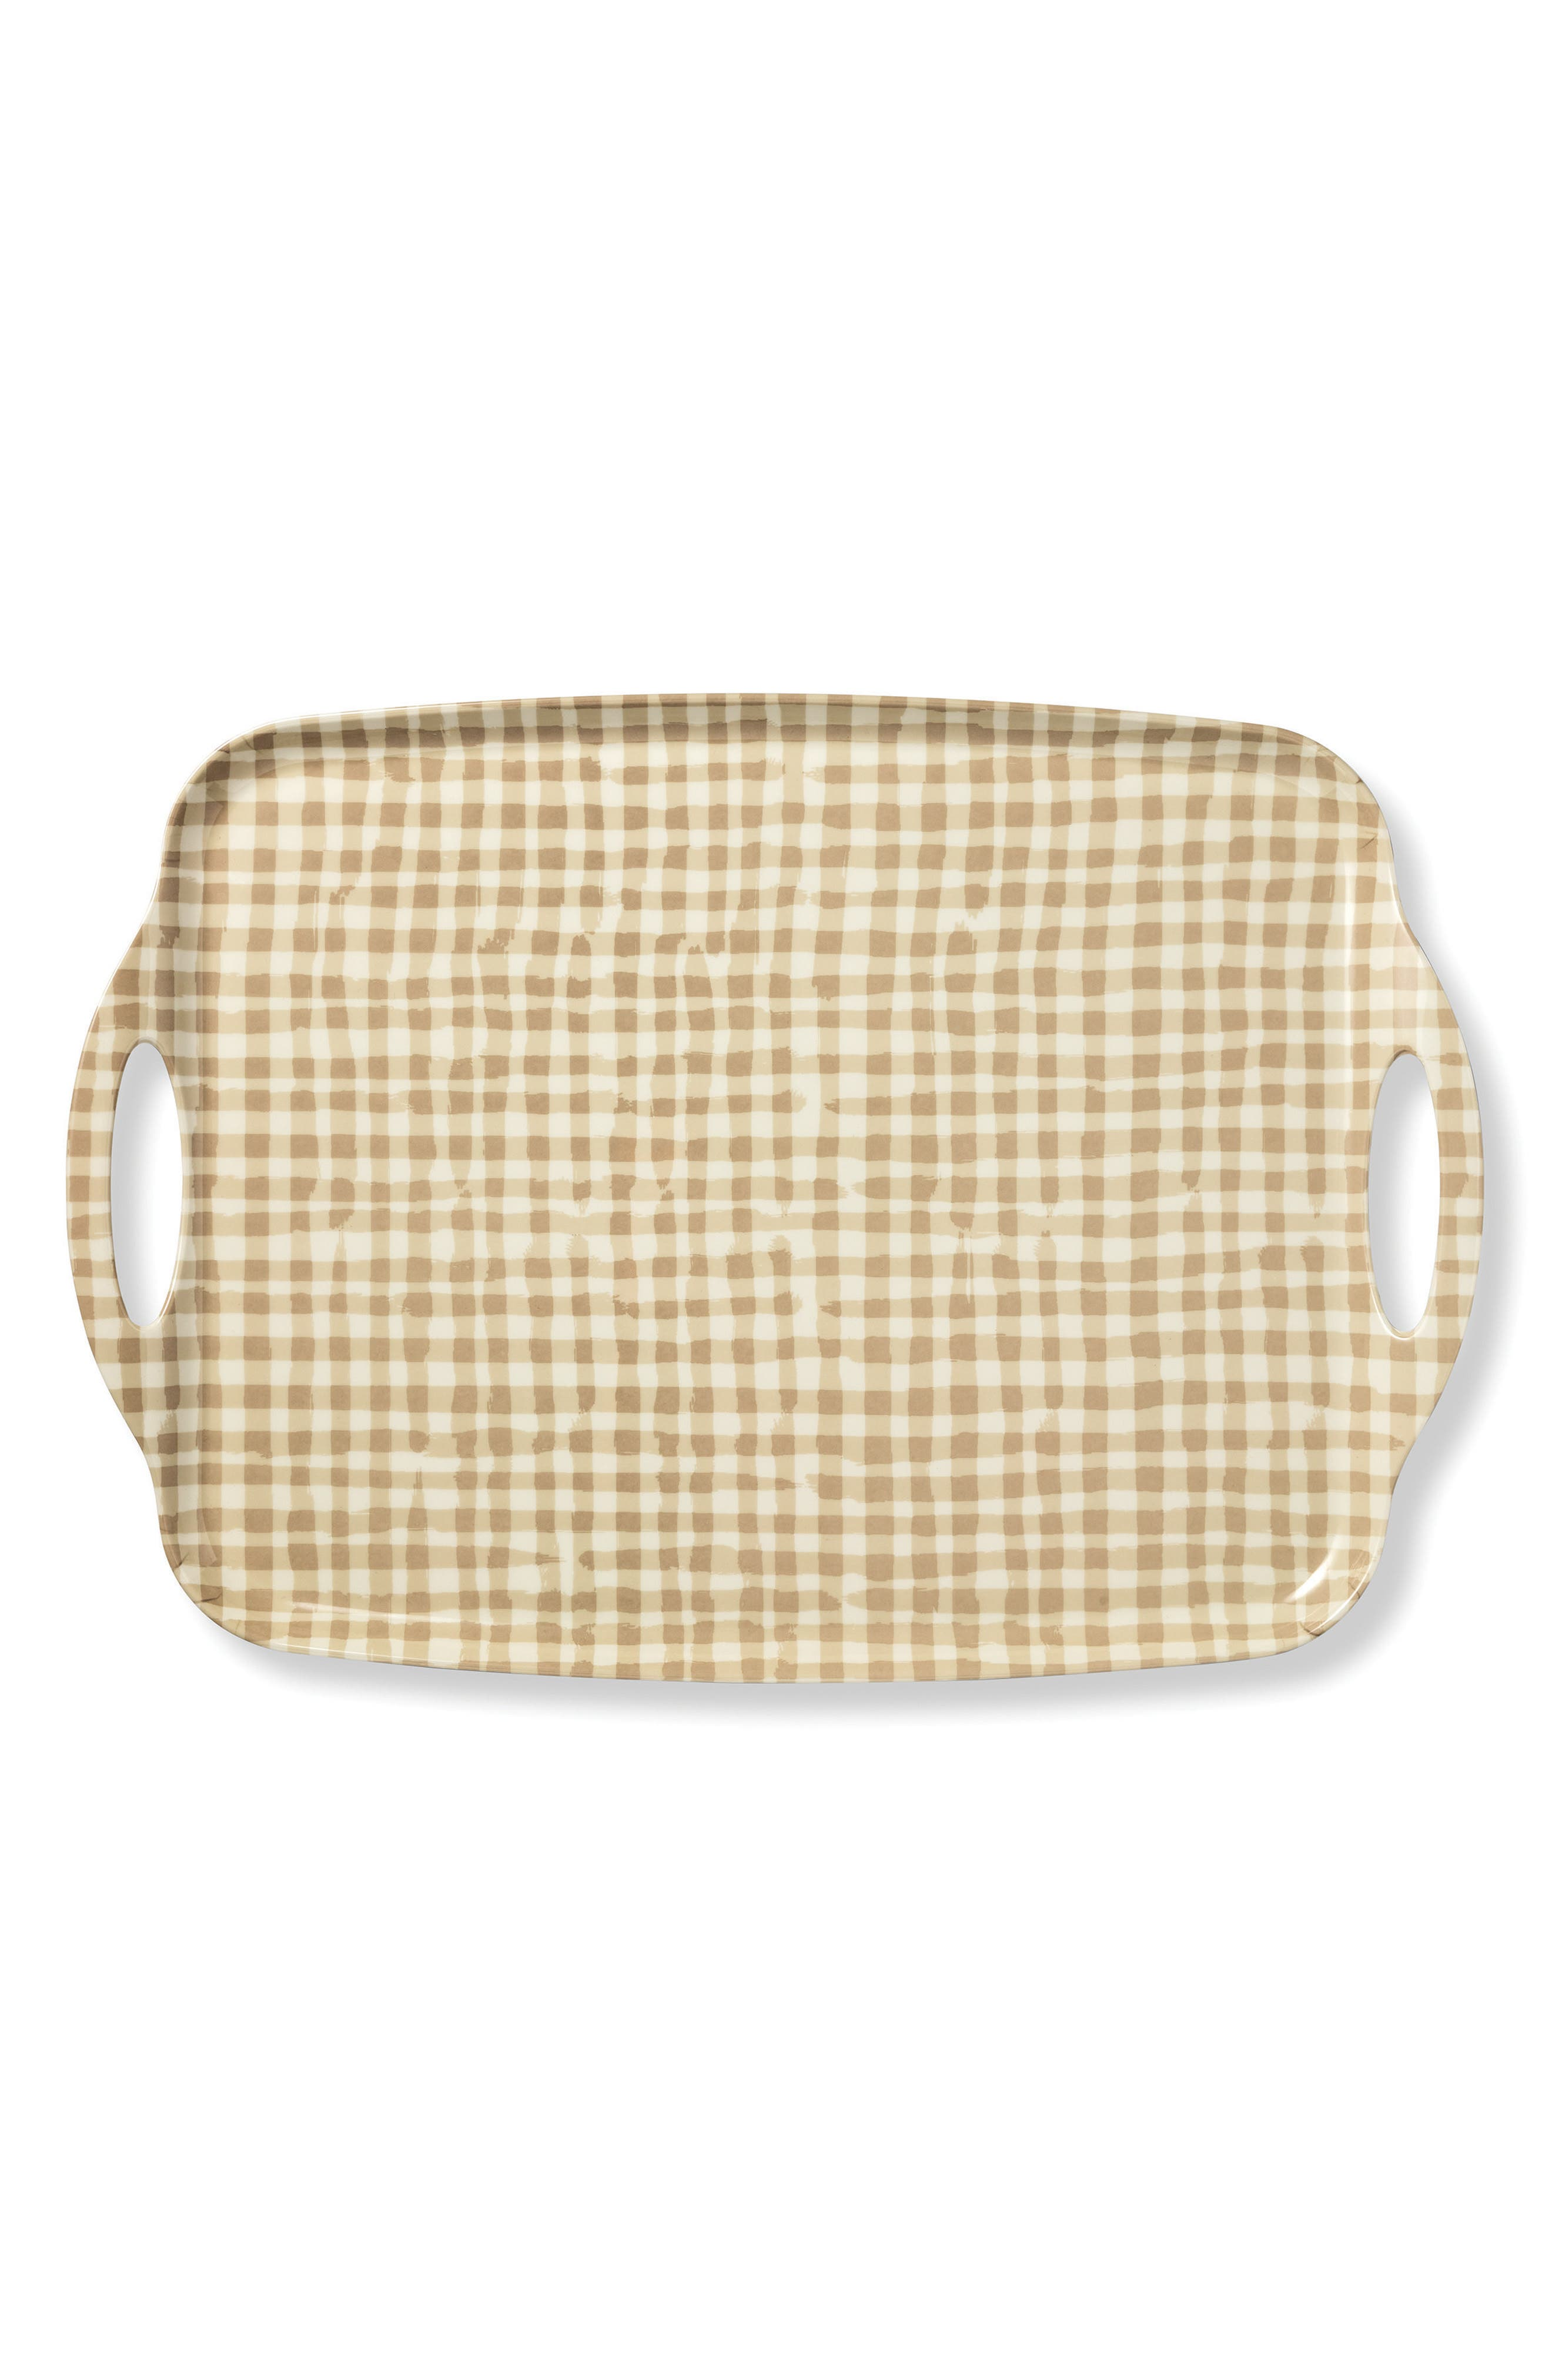 kate spade new york gingham serving tray